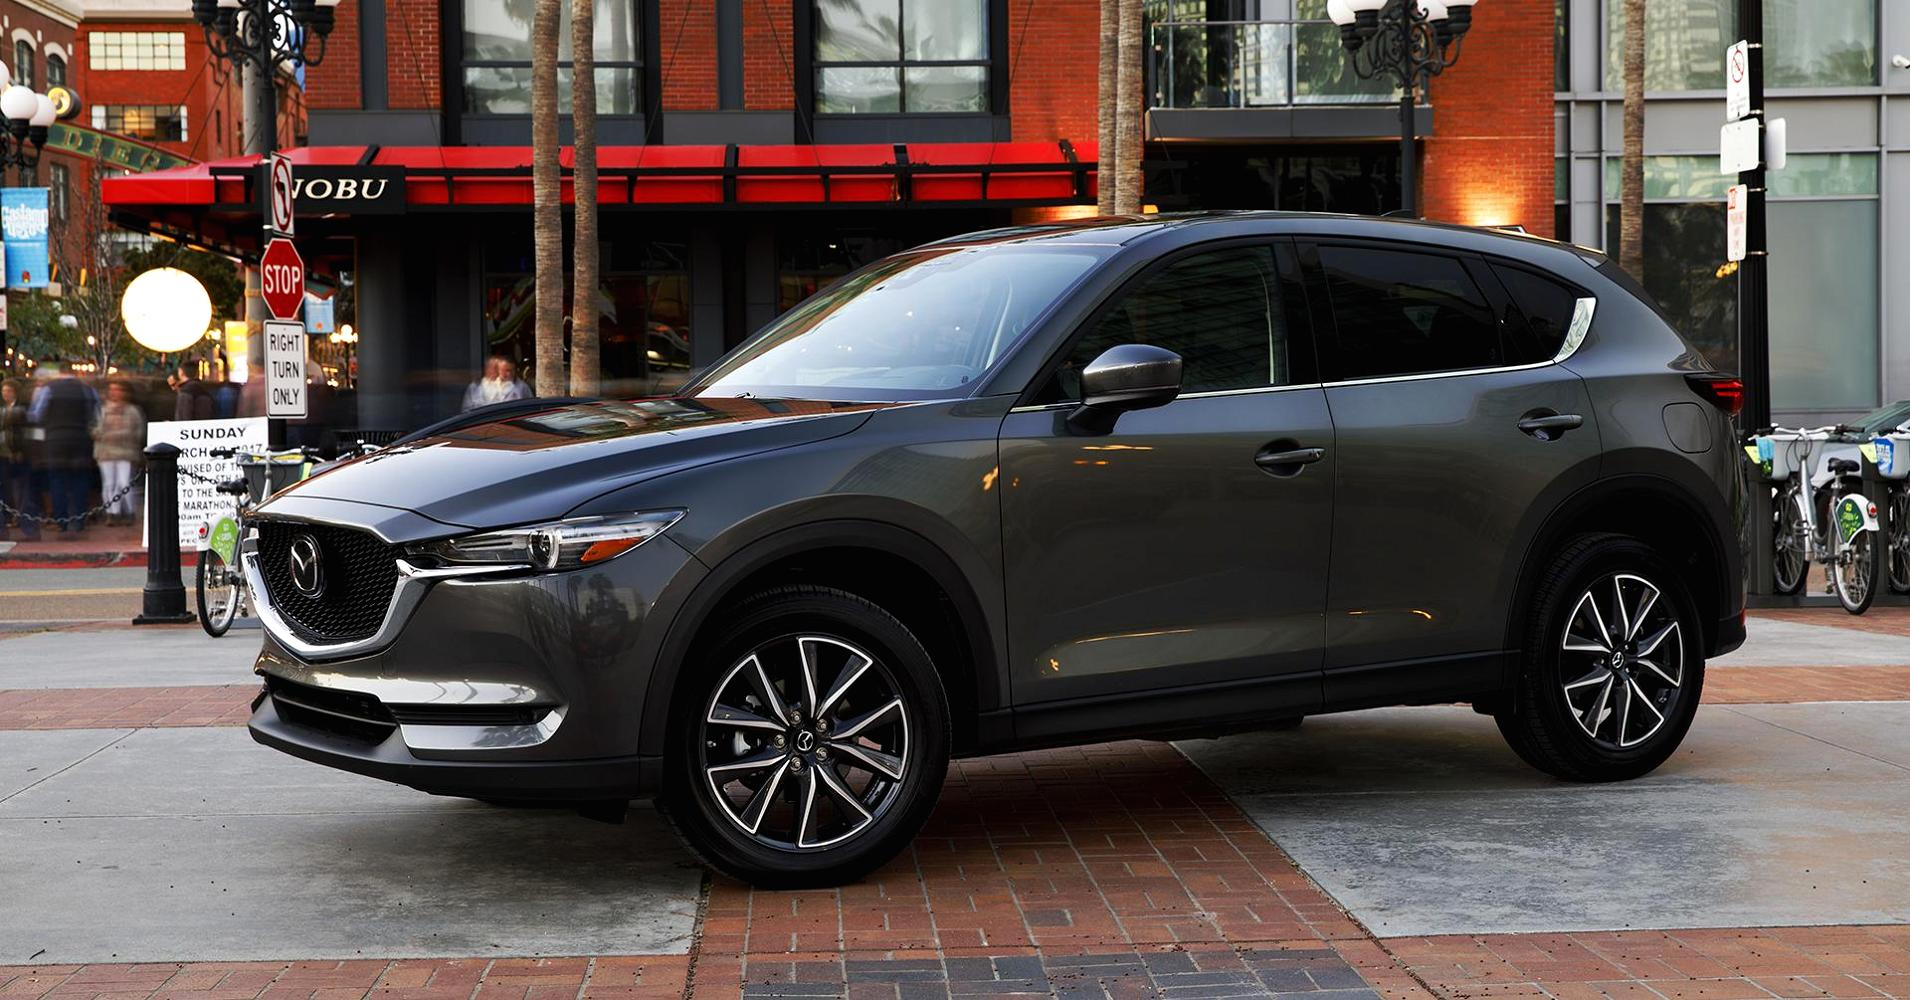 Mazda CX-5 review: One of the best compact crossovers on the market